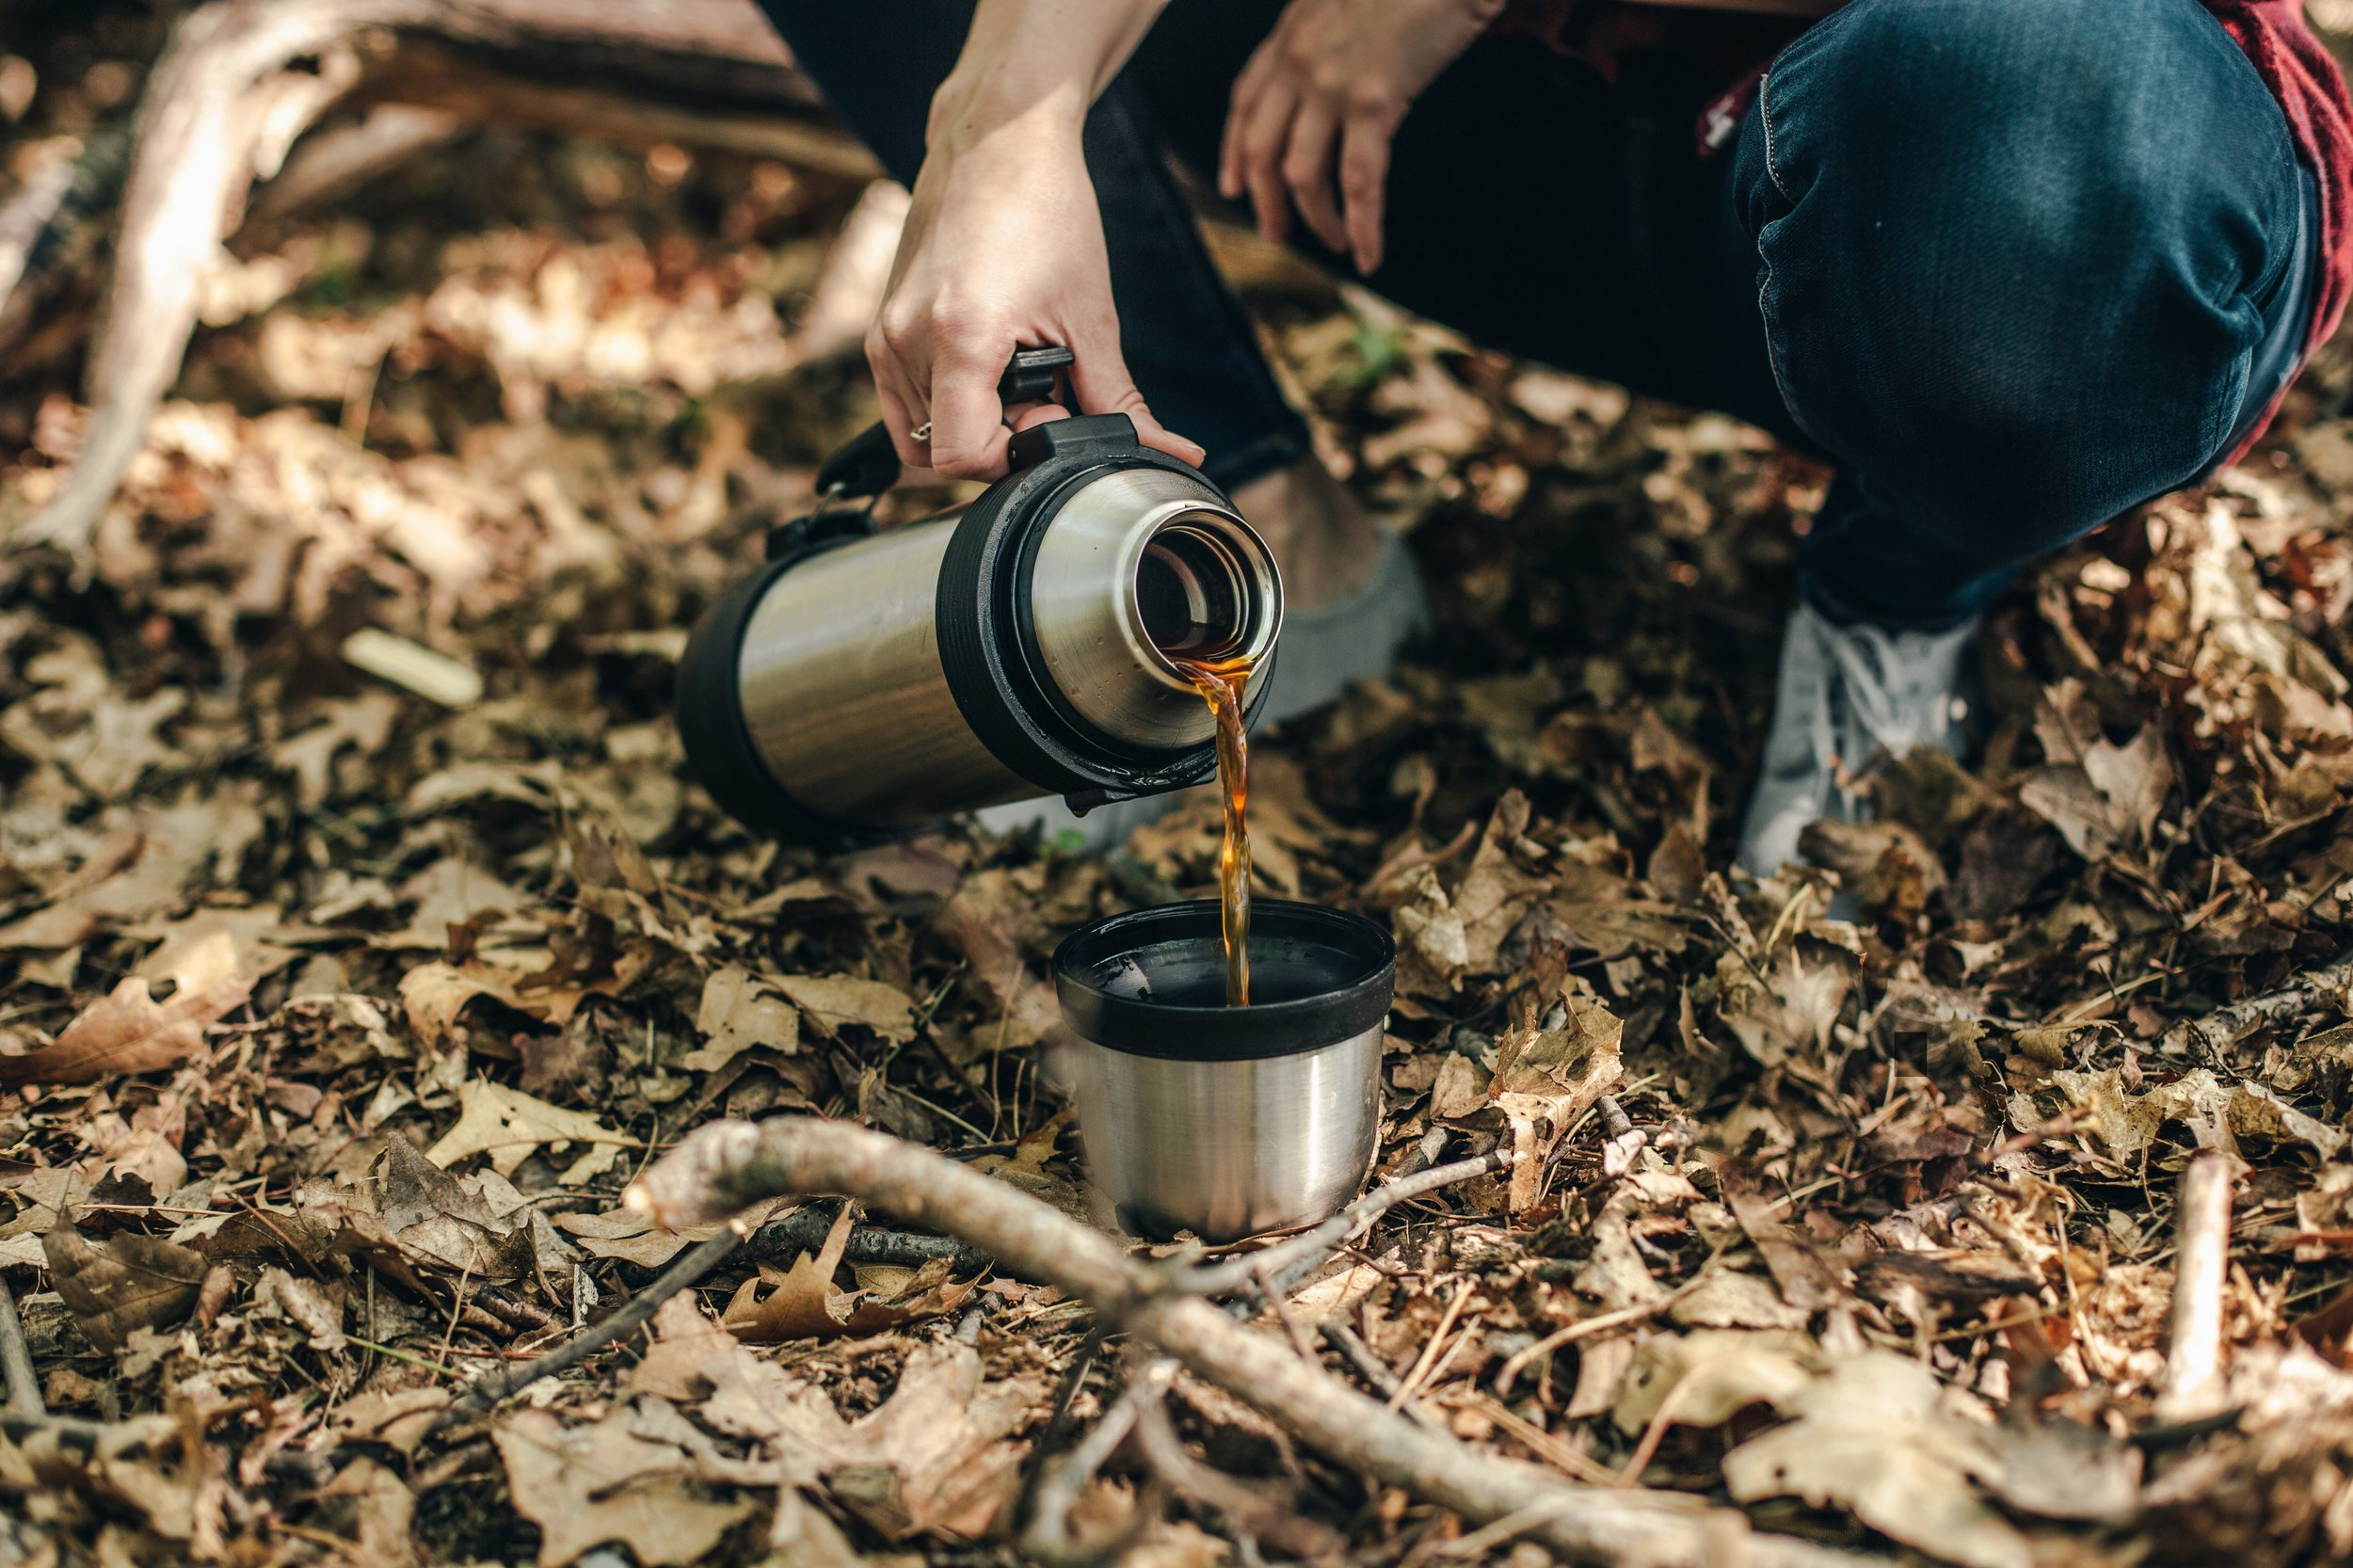 pouring-coffee-in-the-wilderness_4460x4460.jpg